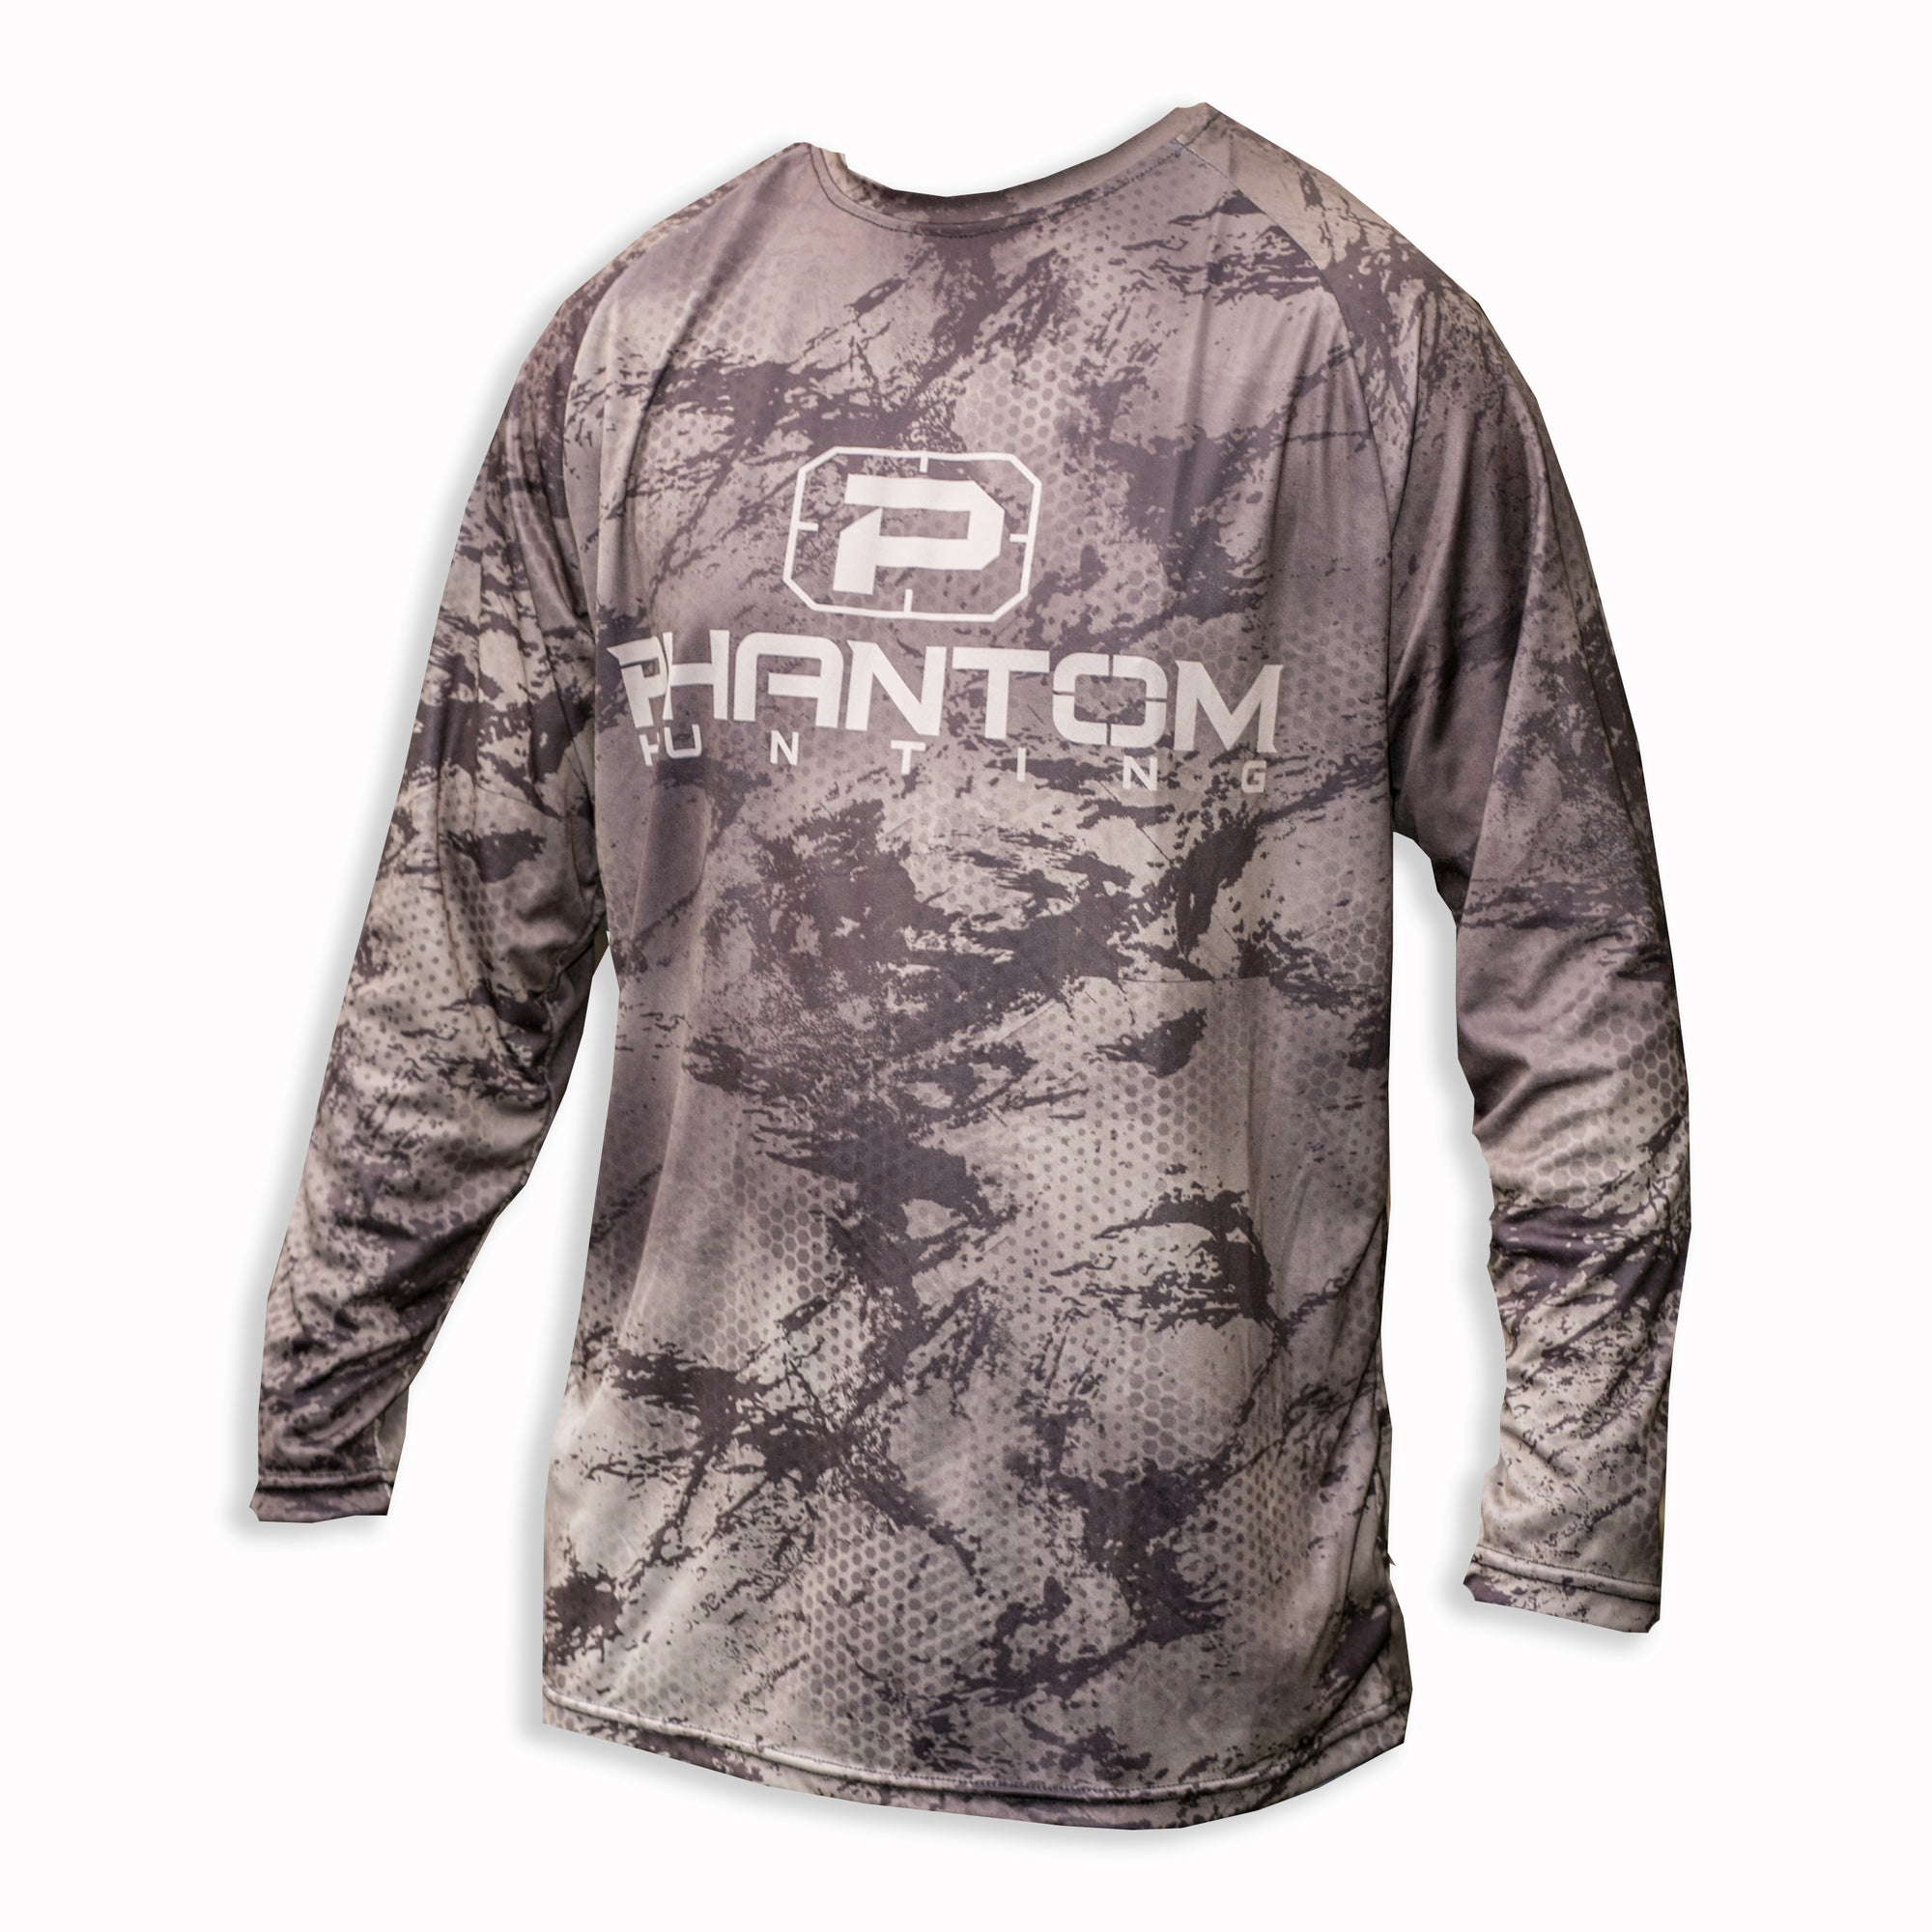 Phantom EDGE SERIES Camo Long-Sleeve Performance Shirt